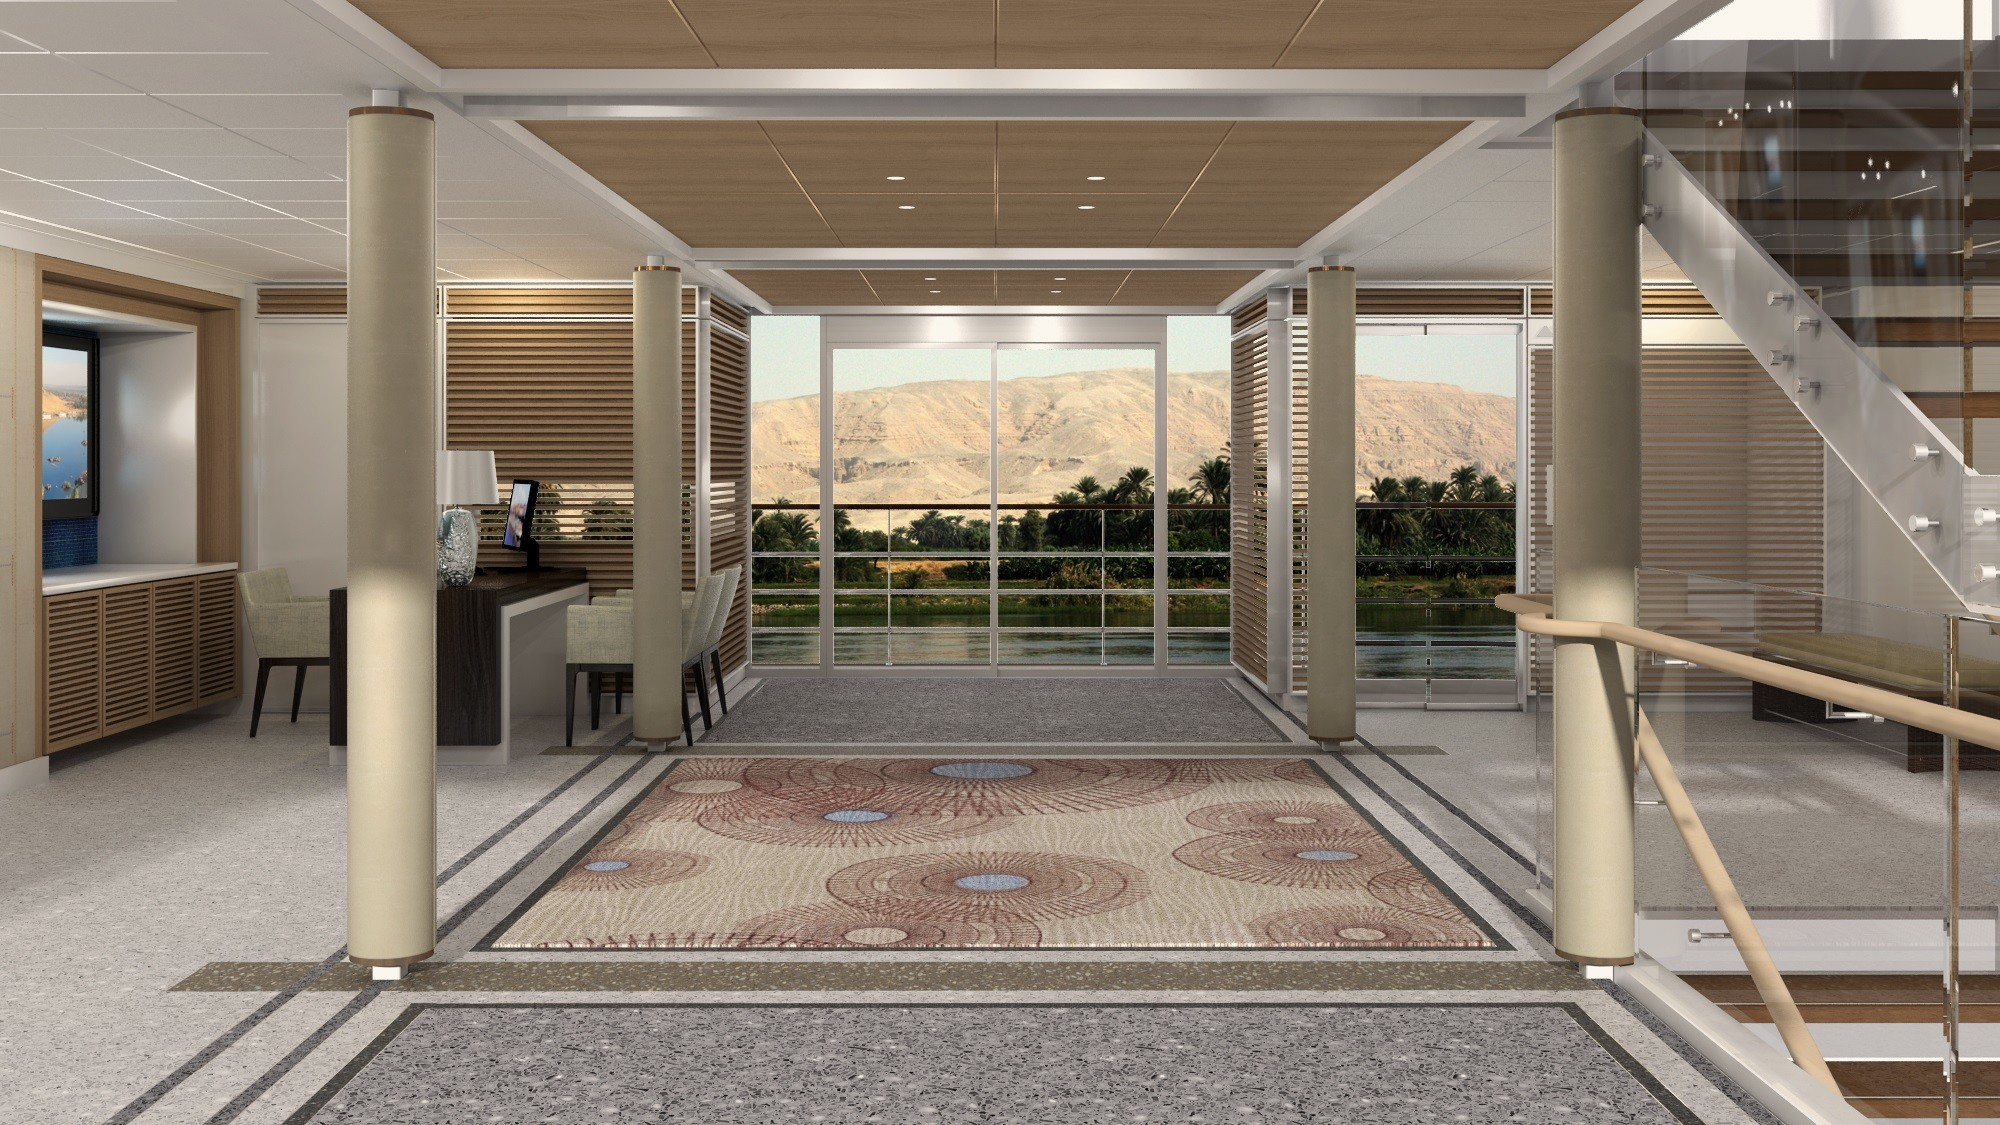 Reception area (artist's rendering).